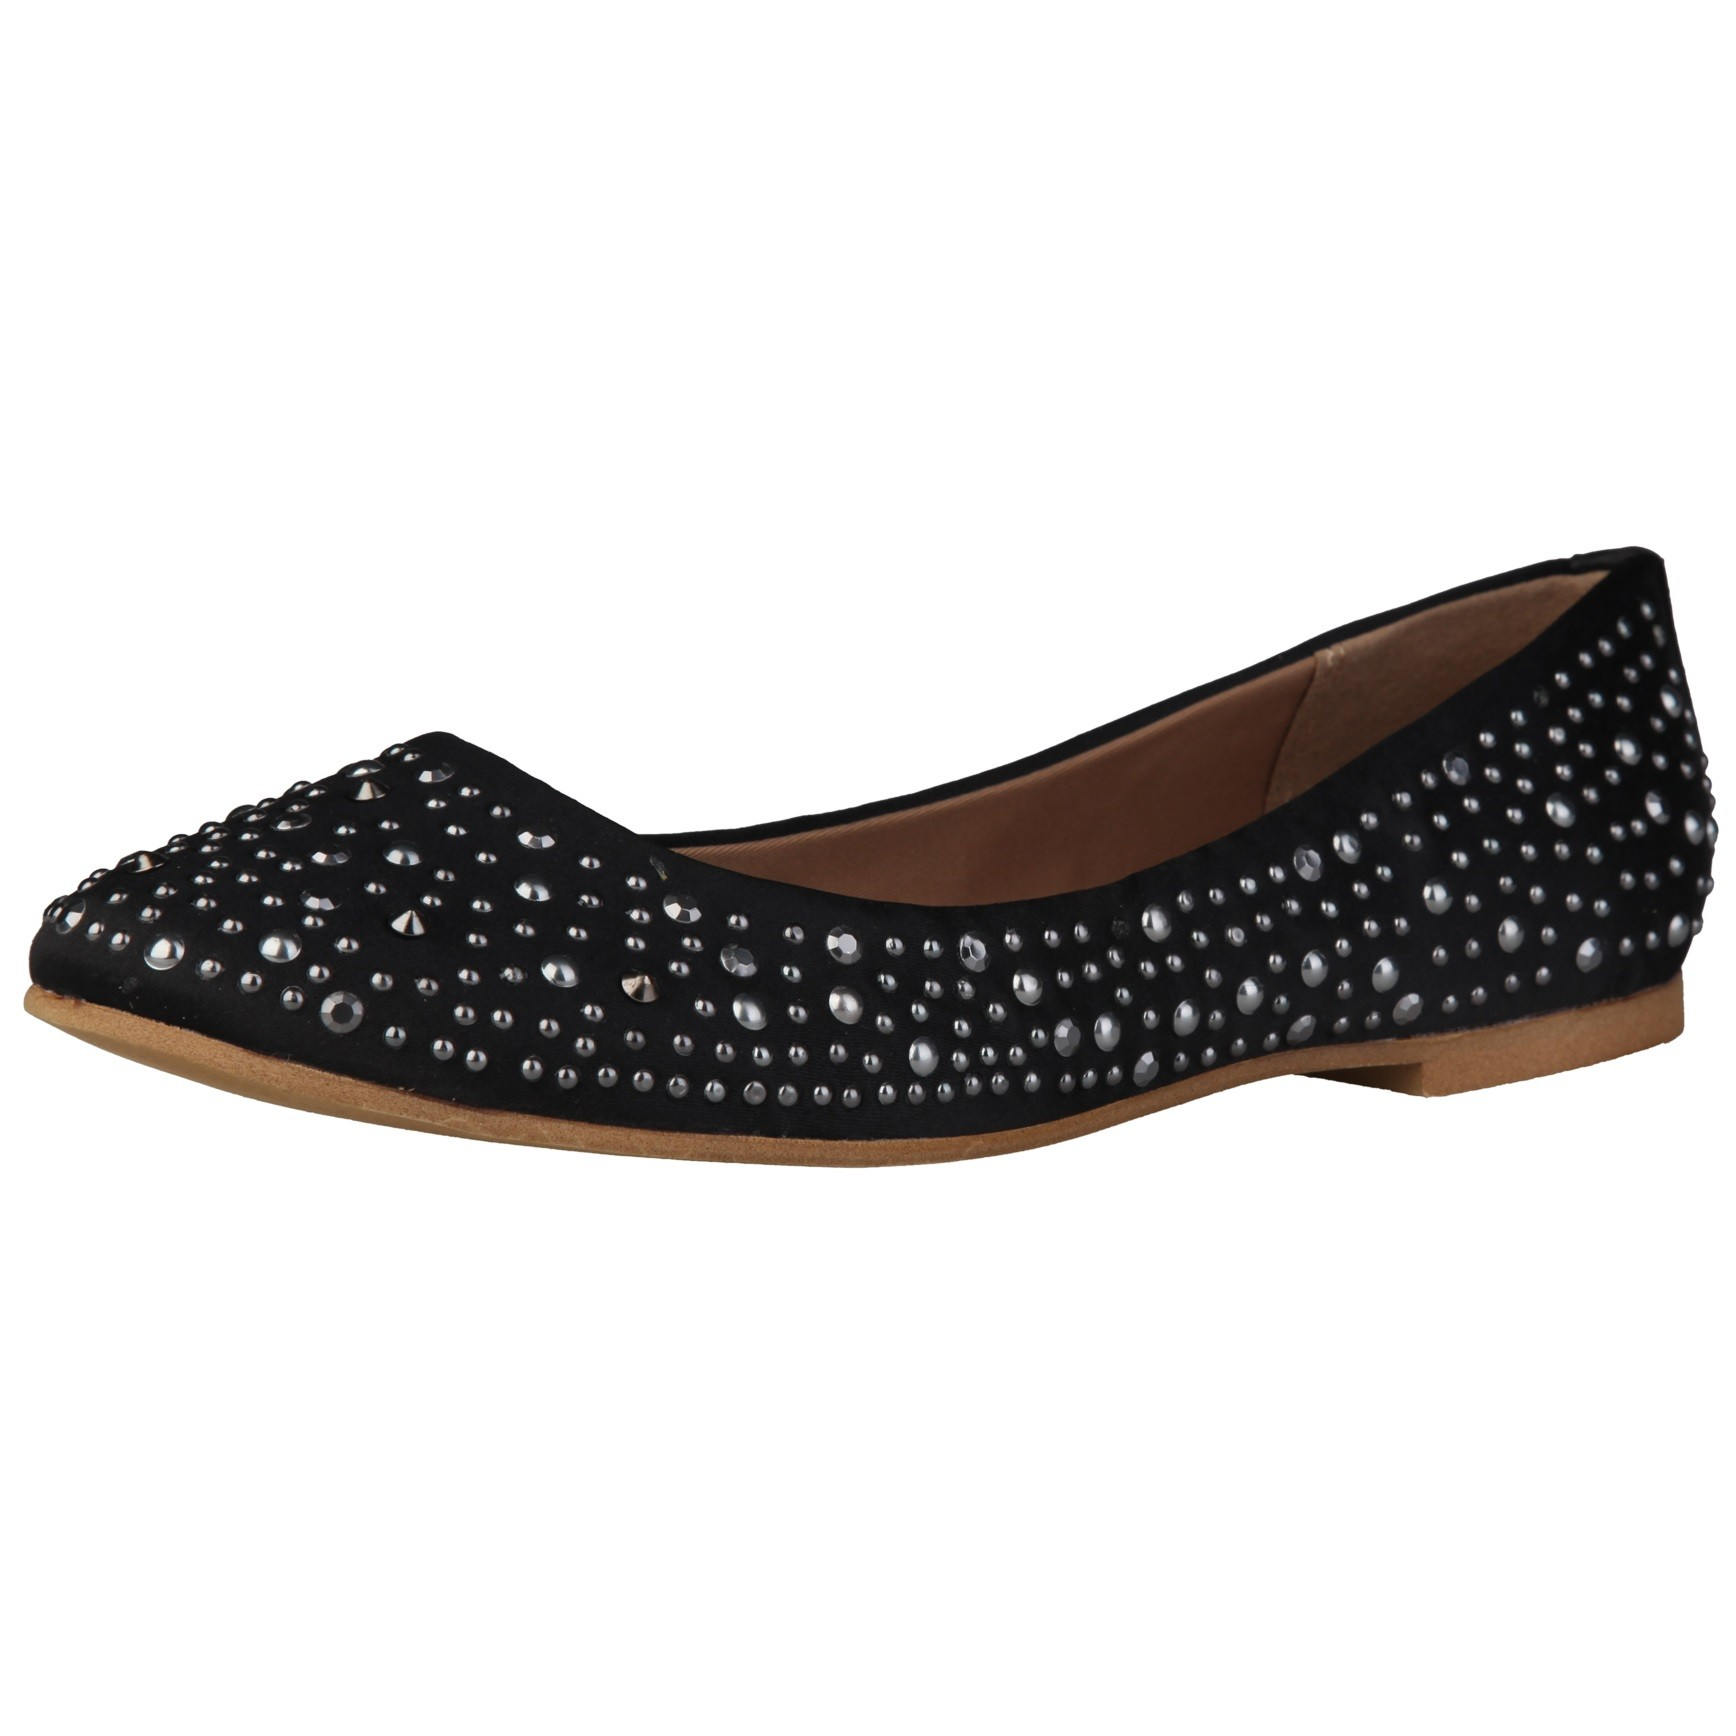 Sofia Loes Flat Shoes Black Rf600153